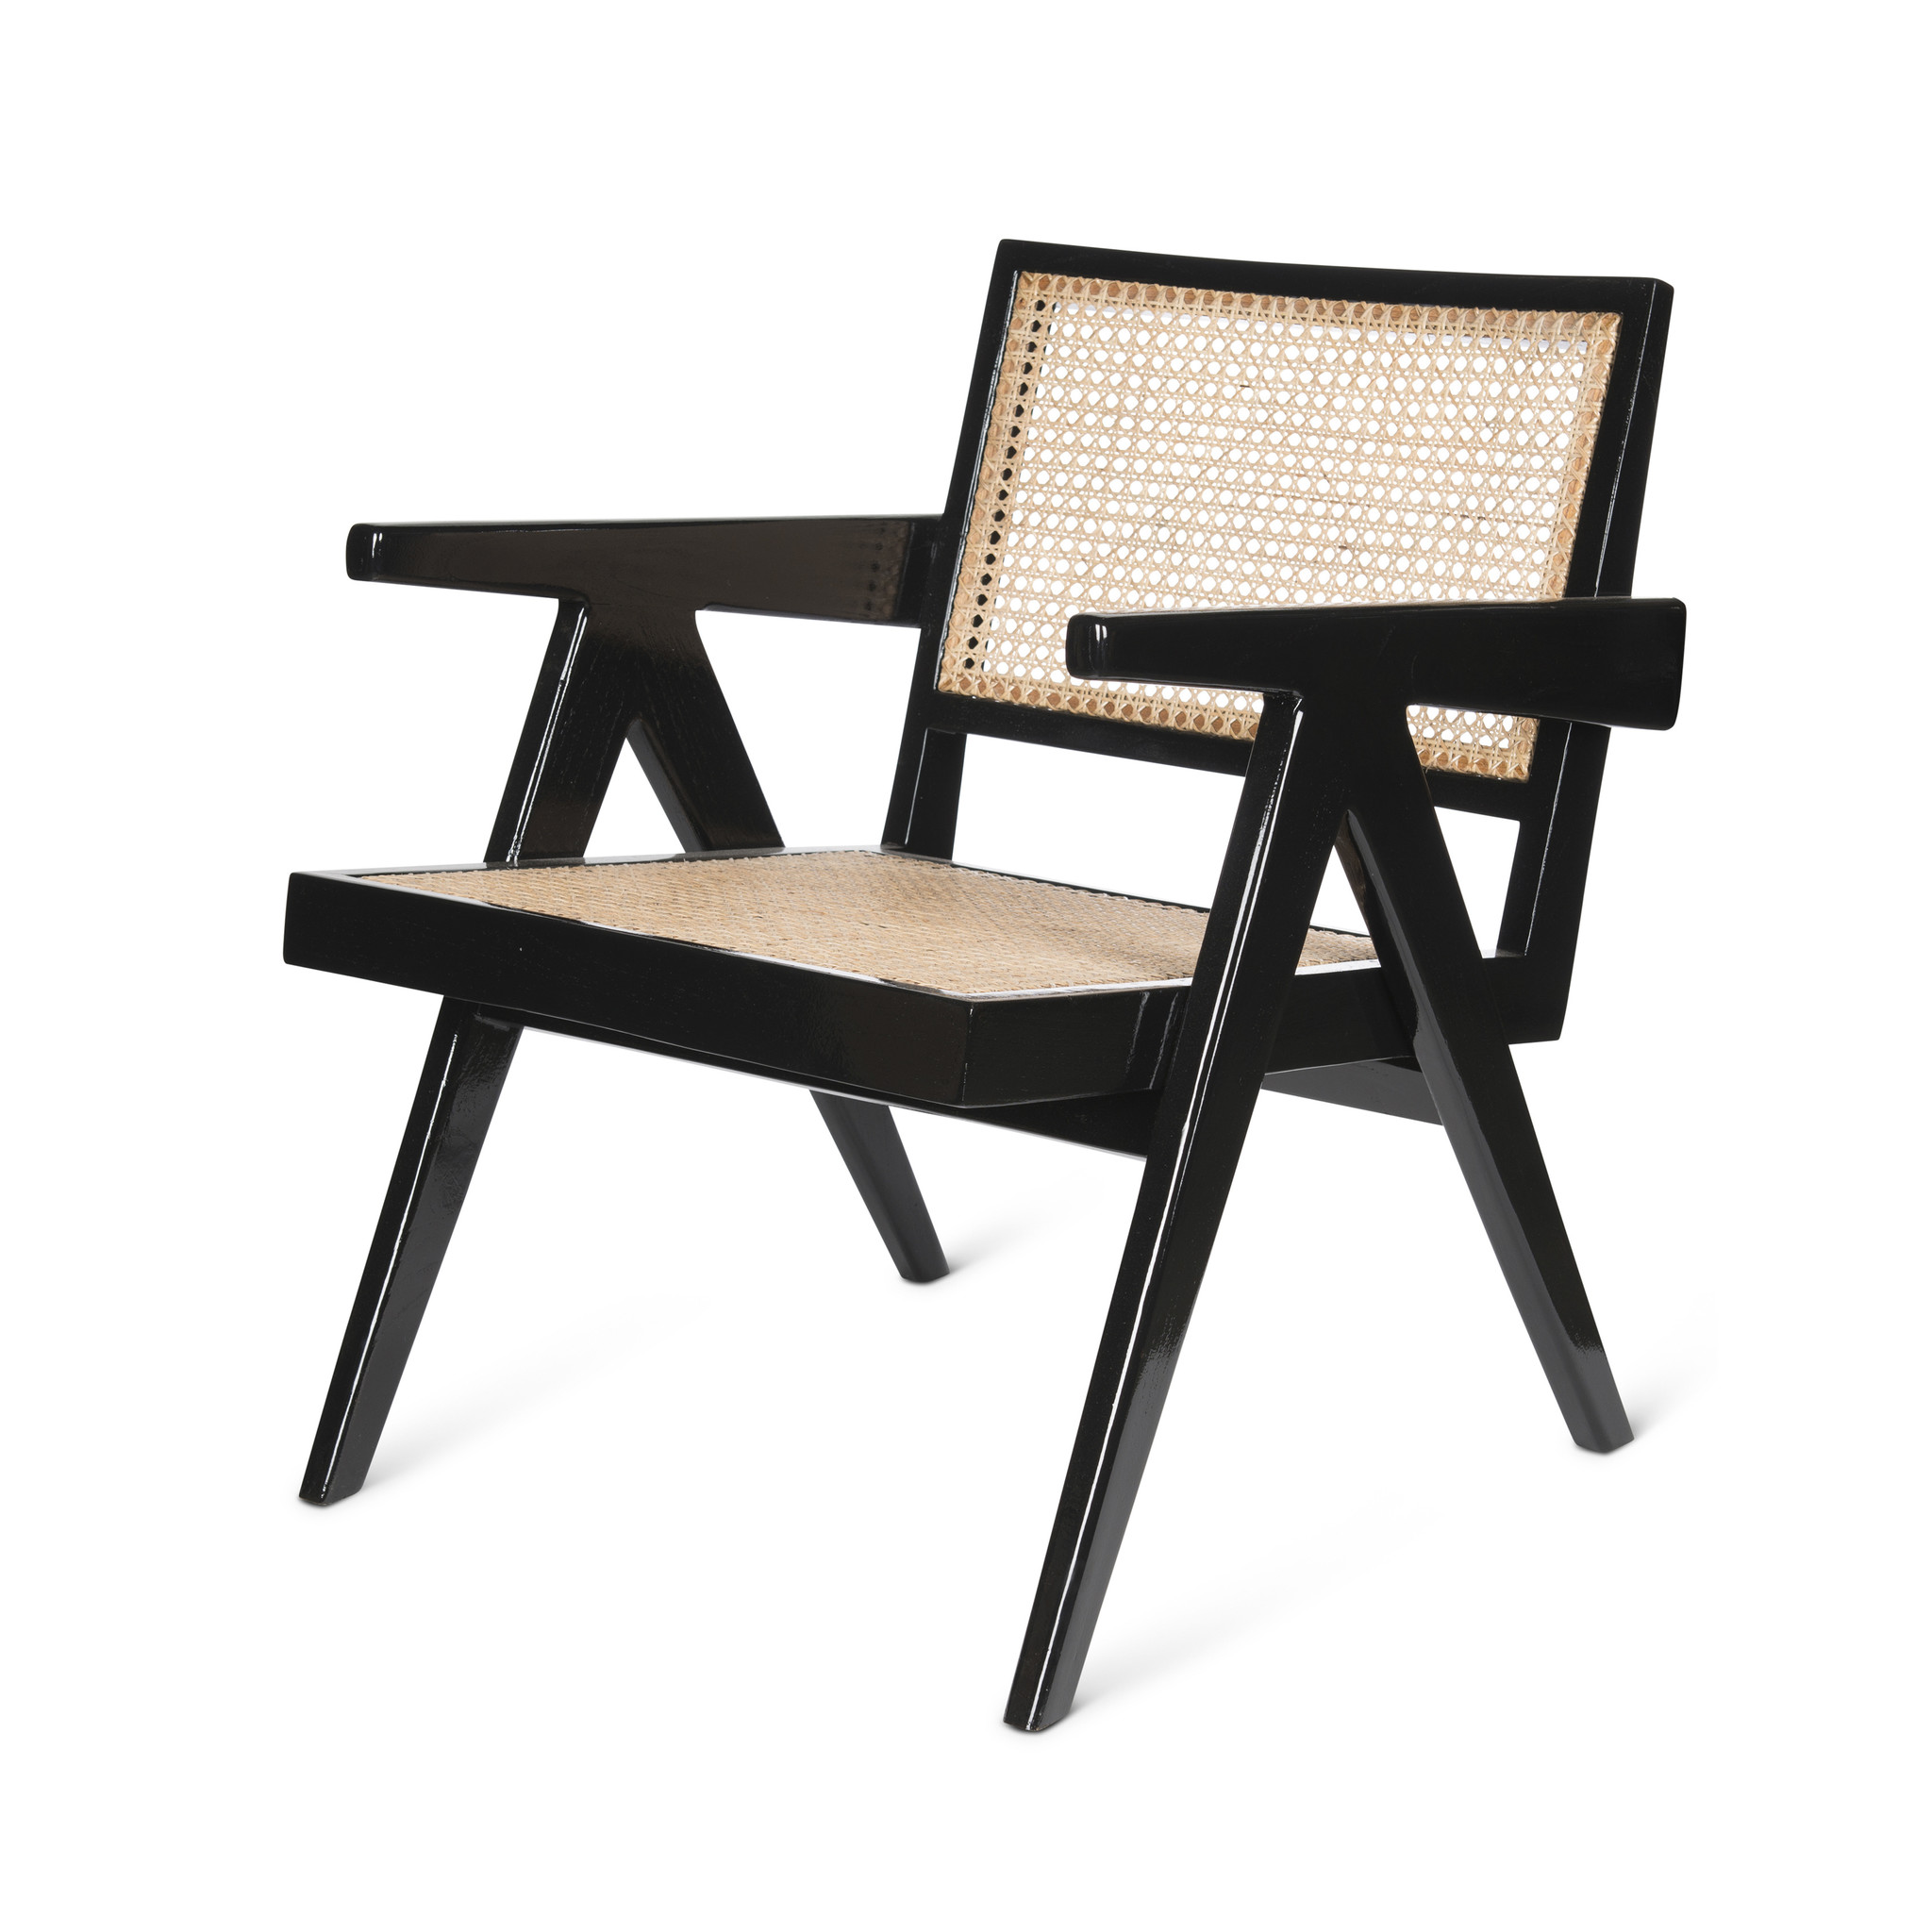 Easy Lounge Chair - Charcoal Black High Gloss-1